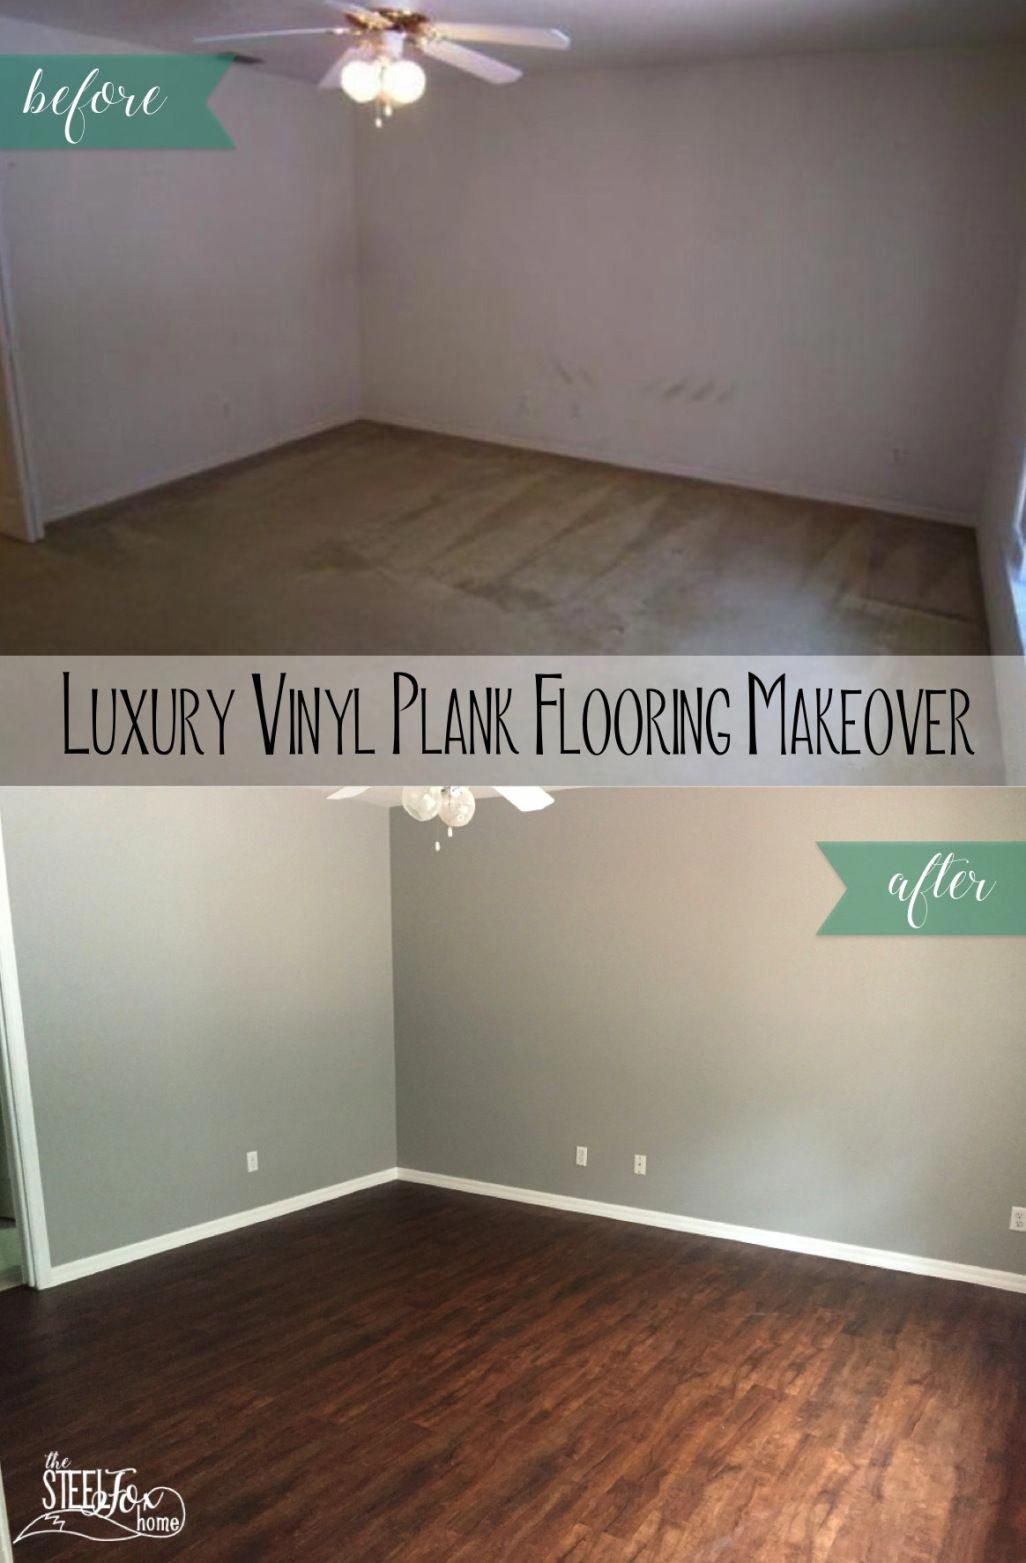 Luxury Vinyl Plank Wood Flooring Whole House Makeover Why We Choose Vinyl Pros And Cons Luxury Vinyl Plank Flooring Luxury Vinyl Plank Vinyl Plank Flooring